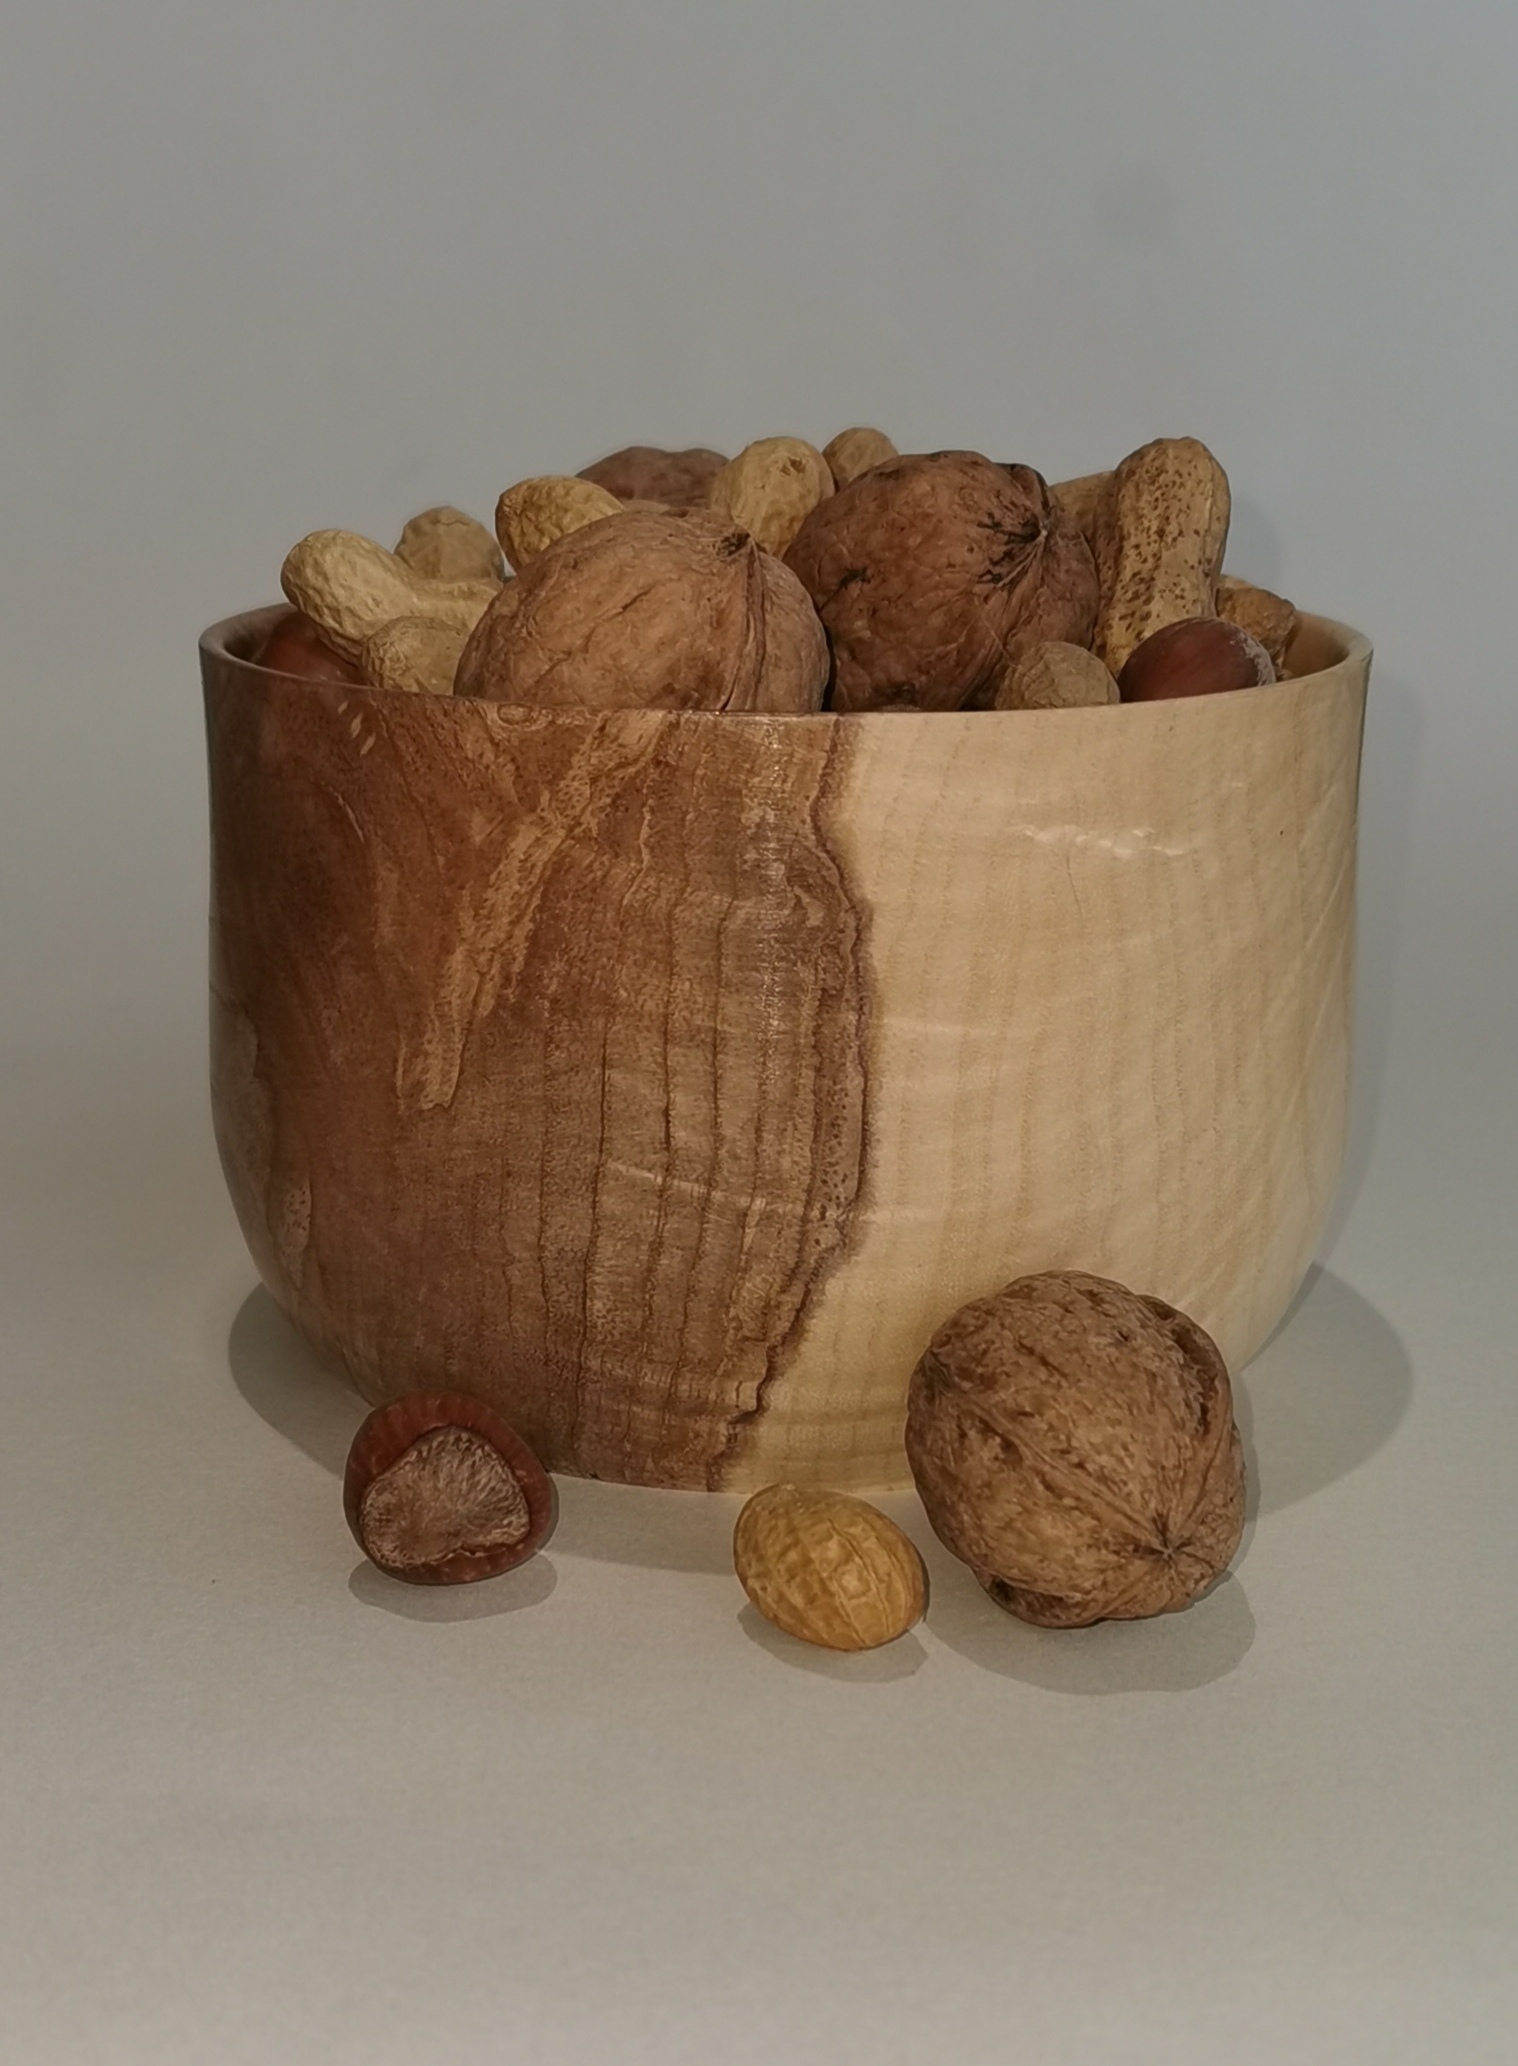 Wood Turned Olive Ash Nut/Treat Bowl